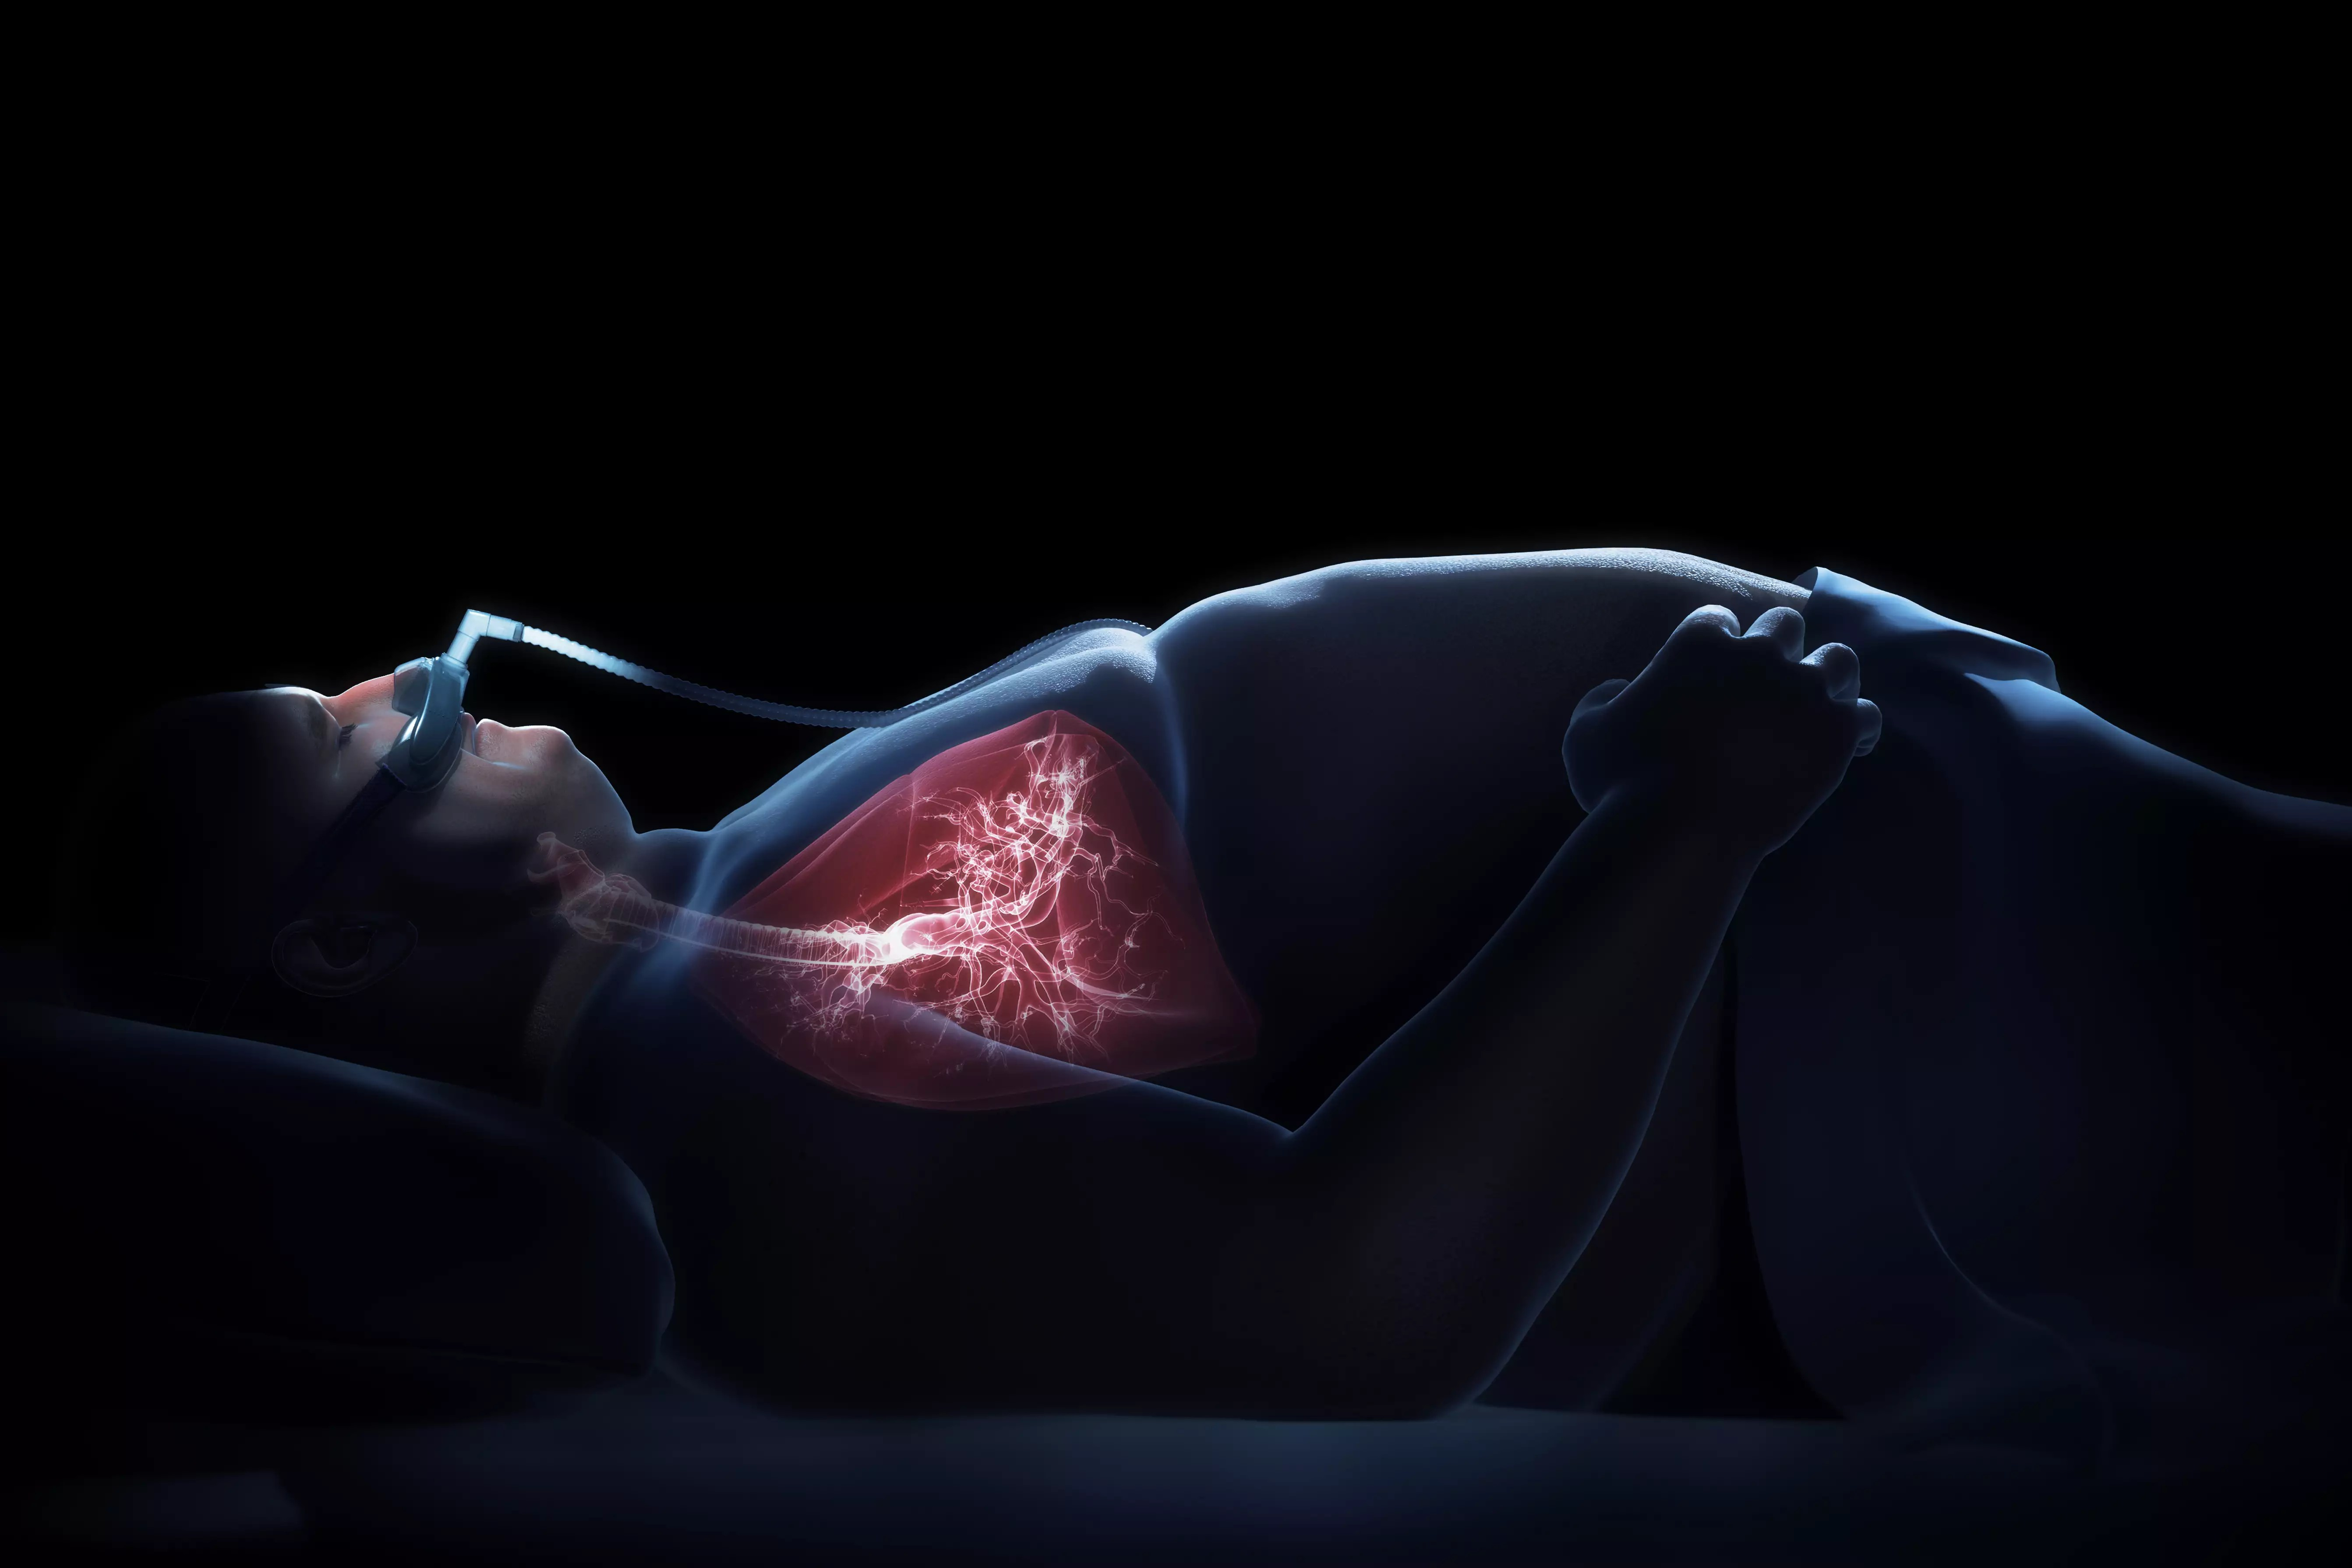 A man treats his sleep apnea with CPAP therapy to reduce daytime sleepiness